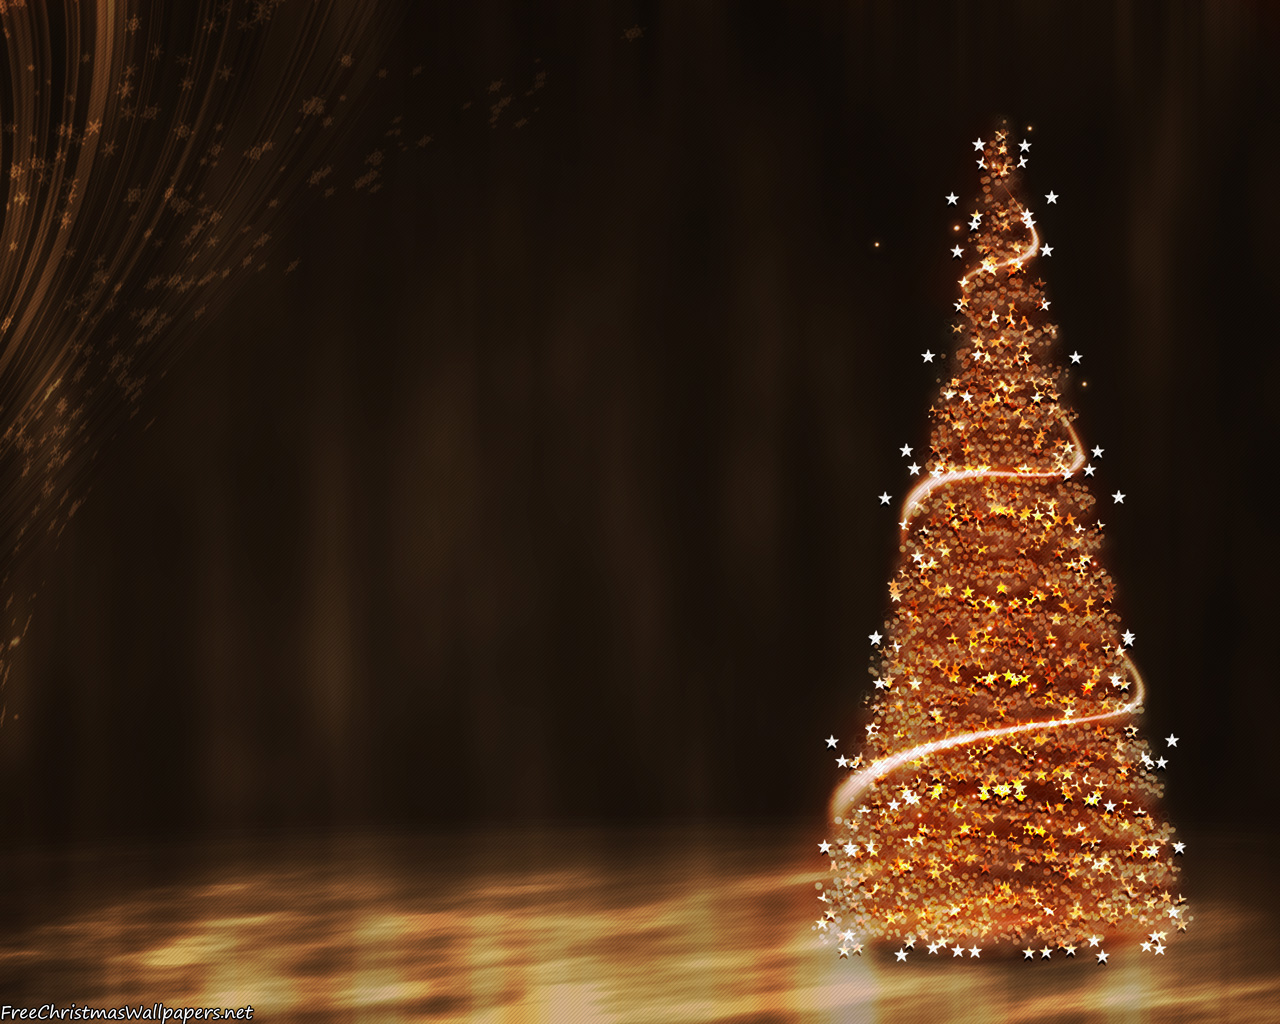 Christmas Tree Wallpaper HD Desktop 1138   HD Wallpapers Site 1280x1024